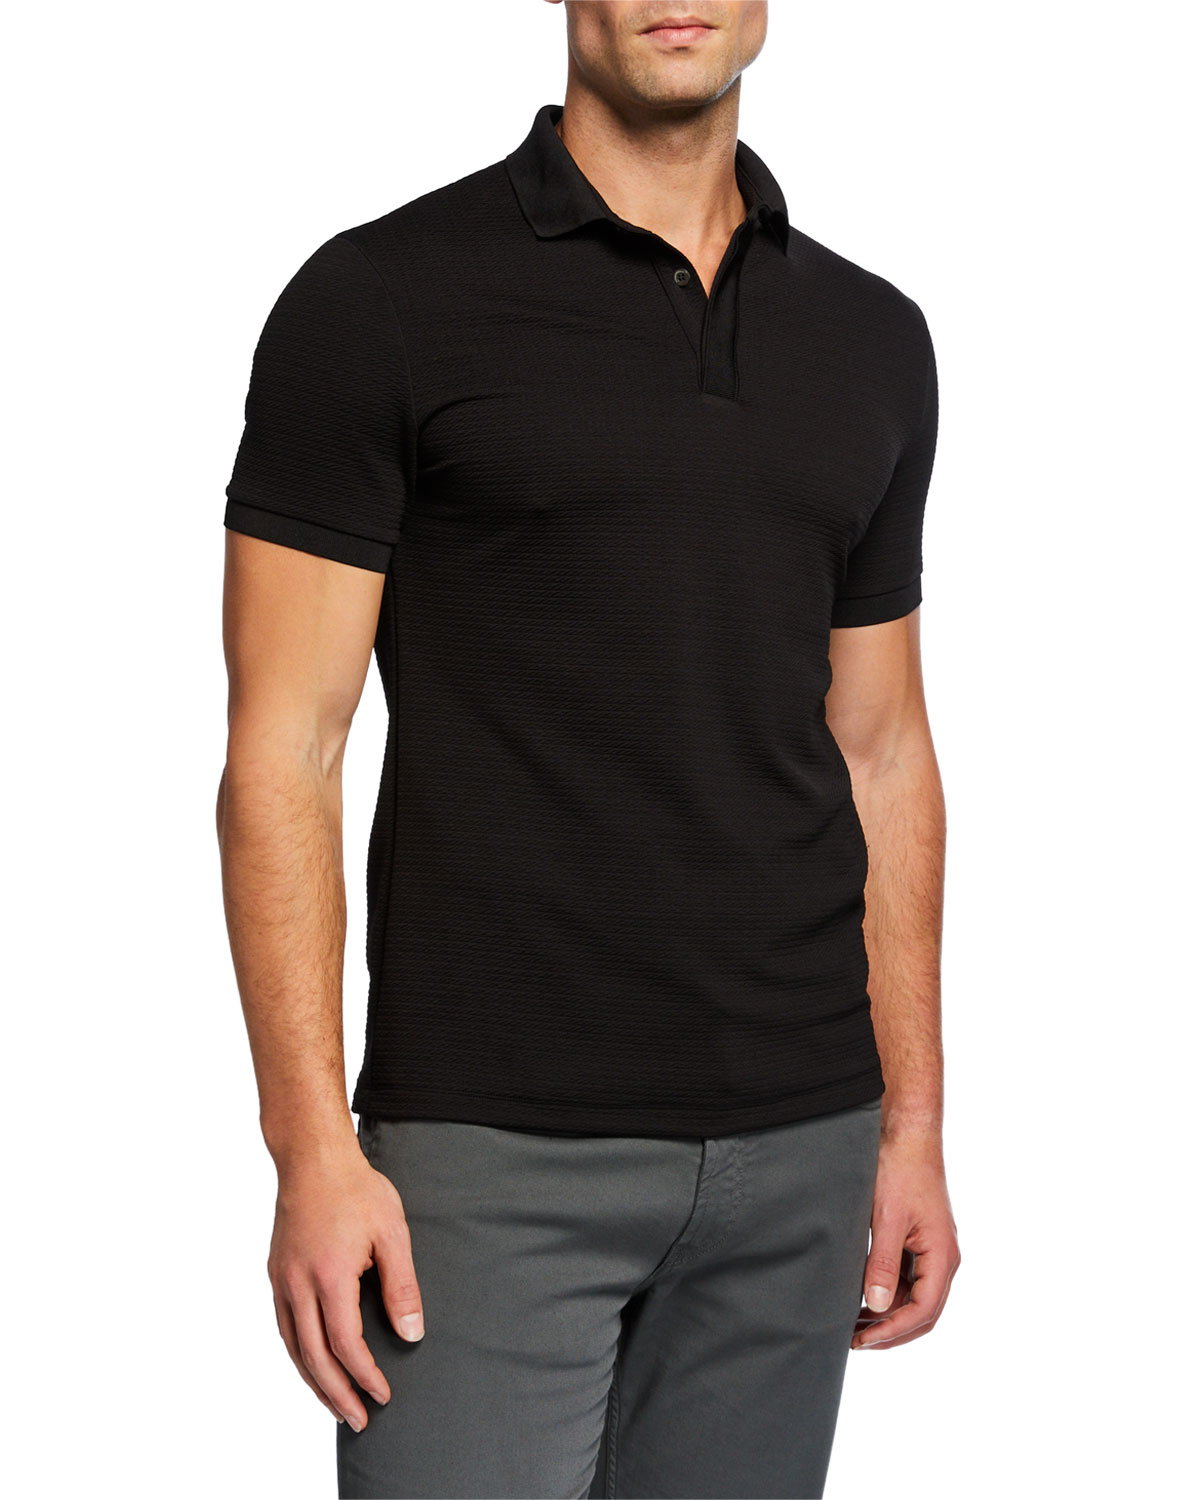 60bd1954 Emporio Armani Textured Collar Slim-Fit Polo Shirt In Solid Black ...